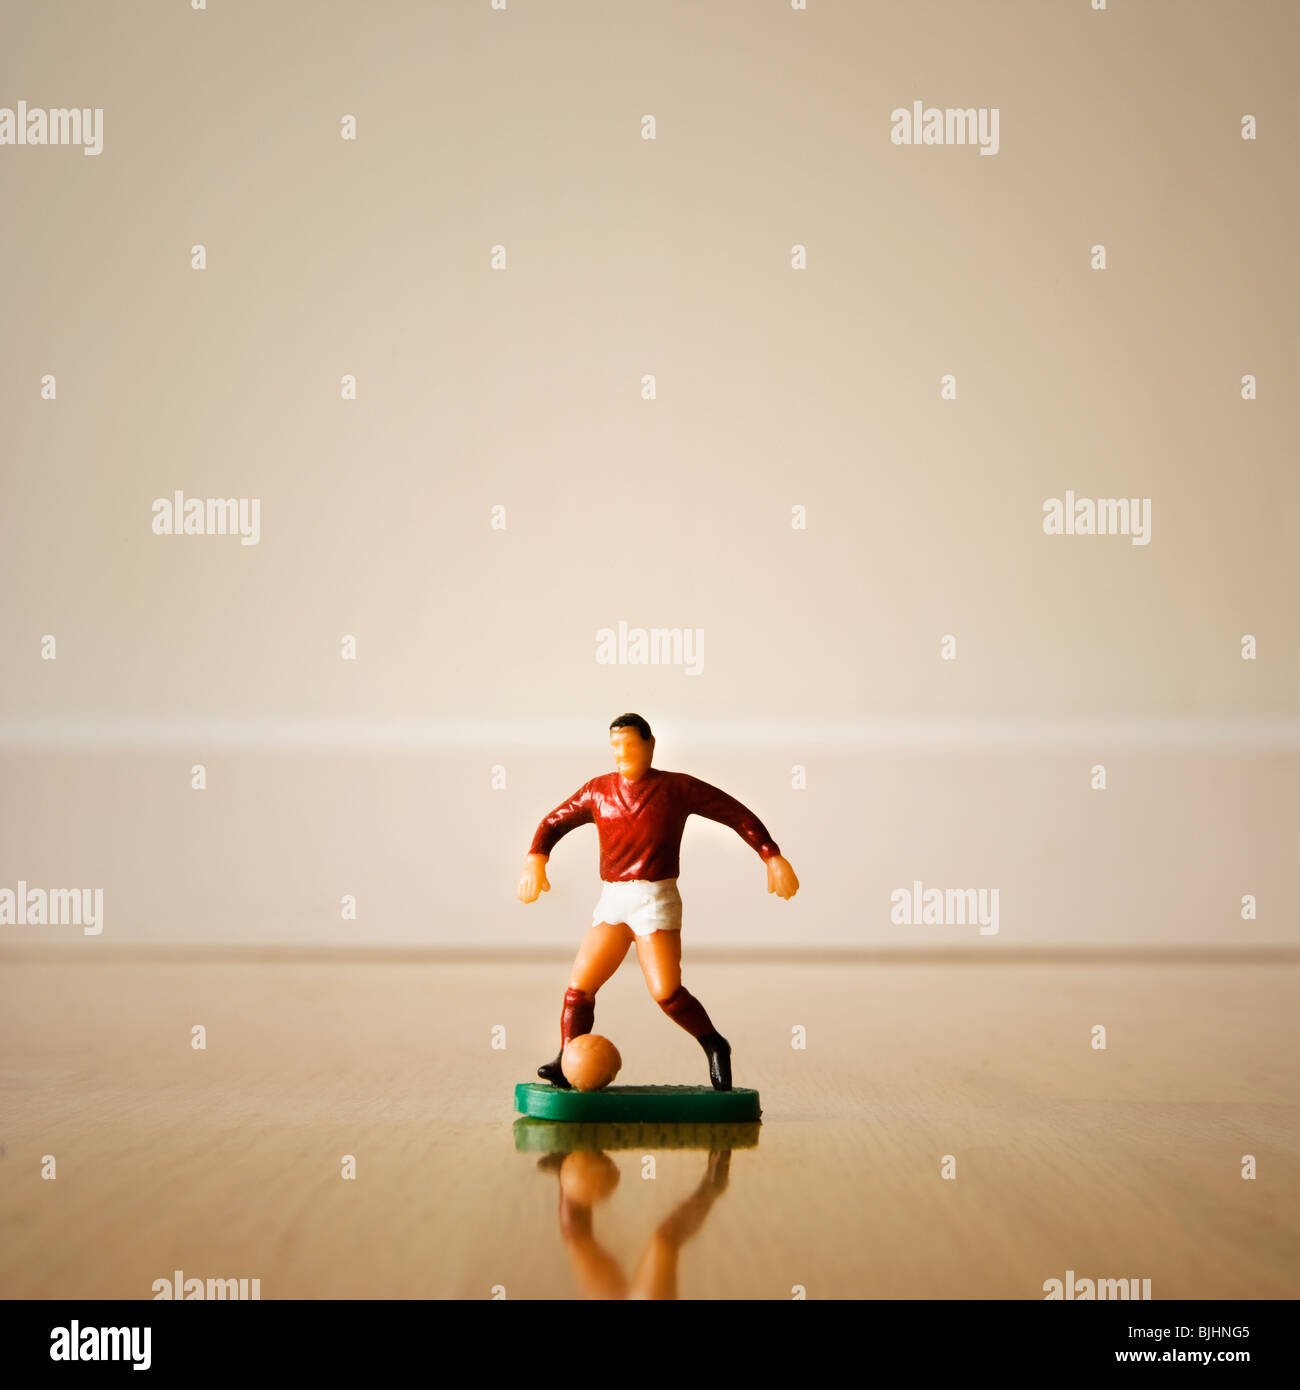 Figurine of a soccer player - Stock Image